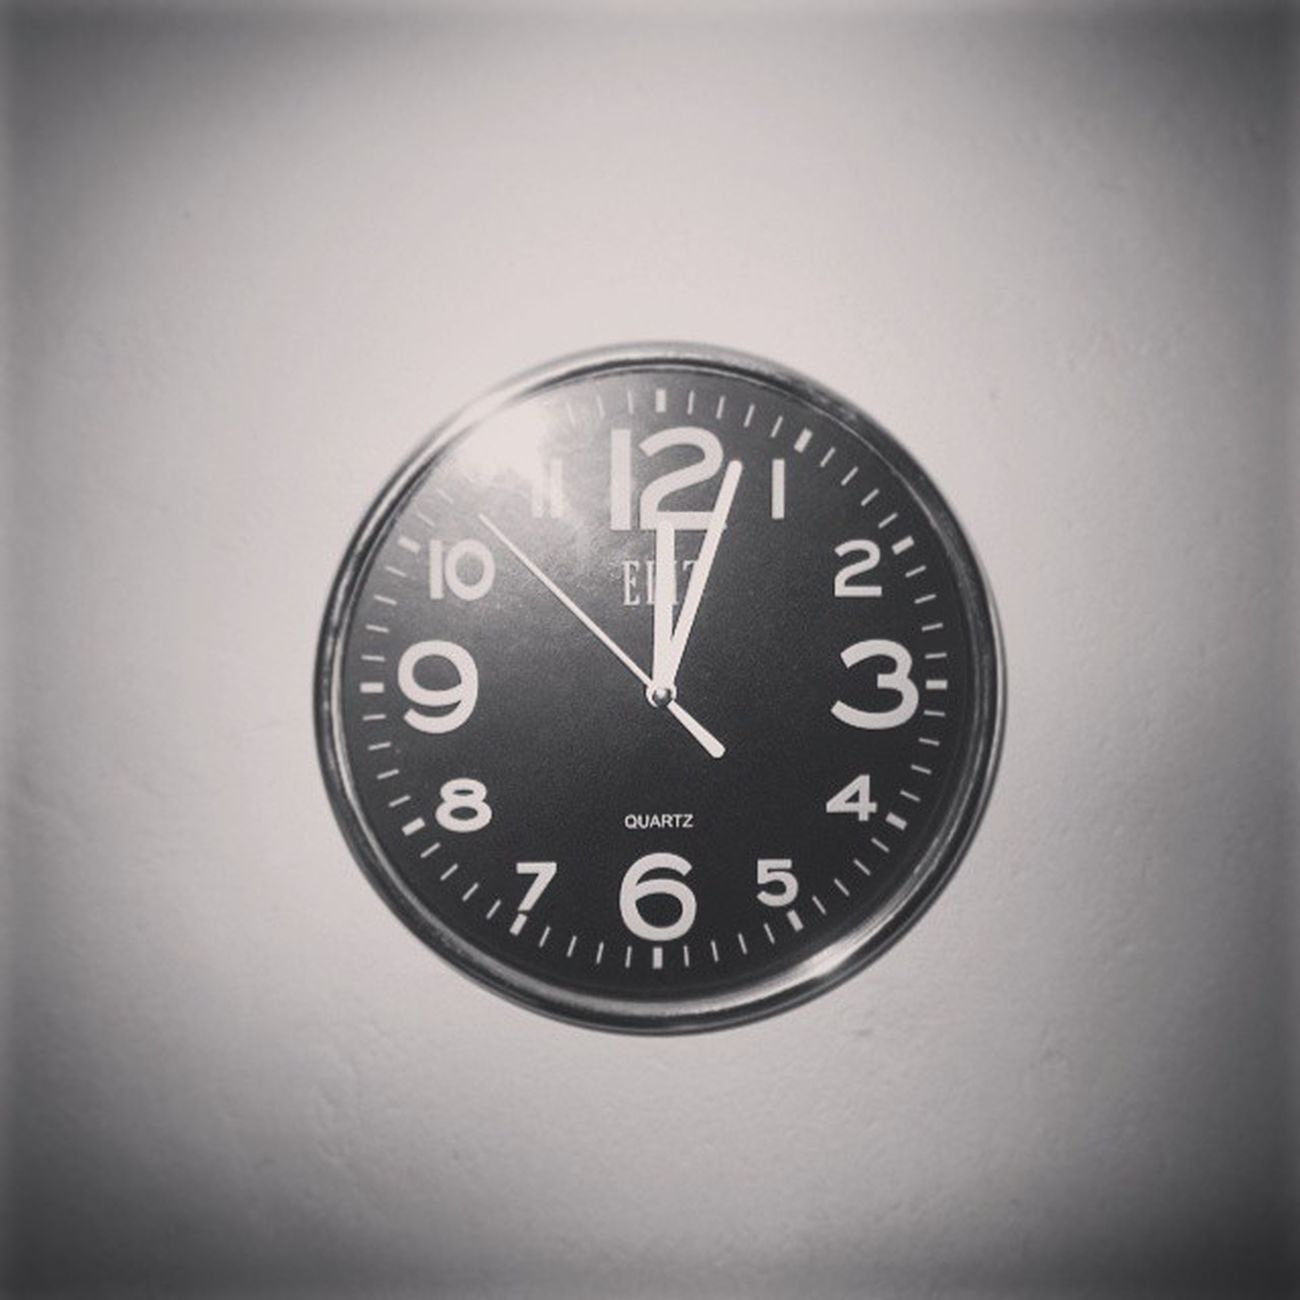 Tick Tock Tick Tock My room wall Clock Canon Eliz Blacknsilver Blacknwhite Willowfilter Instagram Time Midnight 12MP Watch Clock Elizwatch